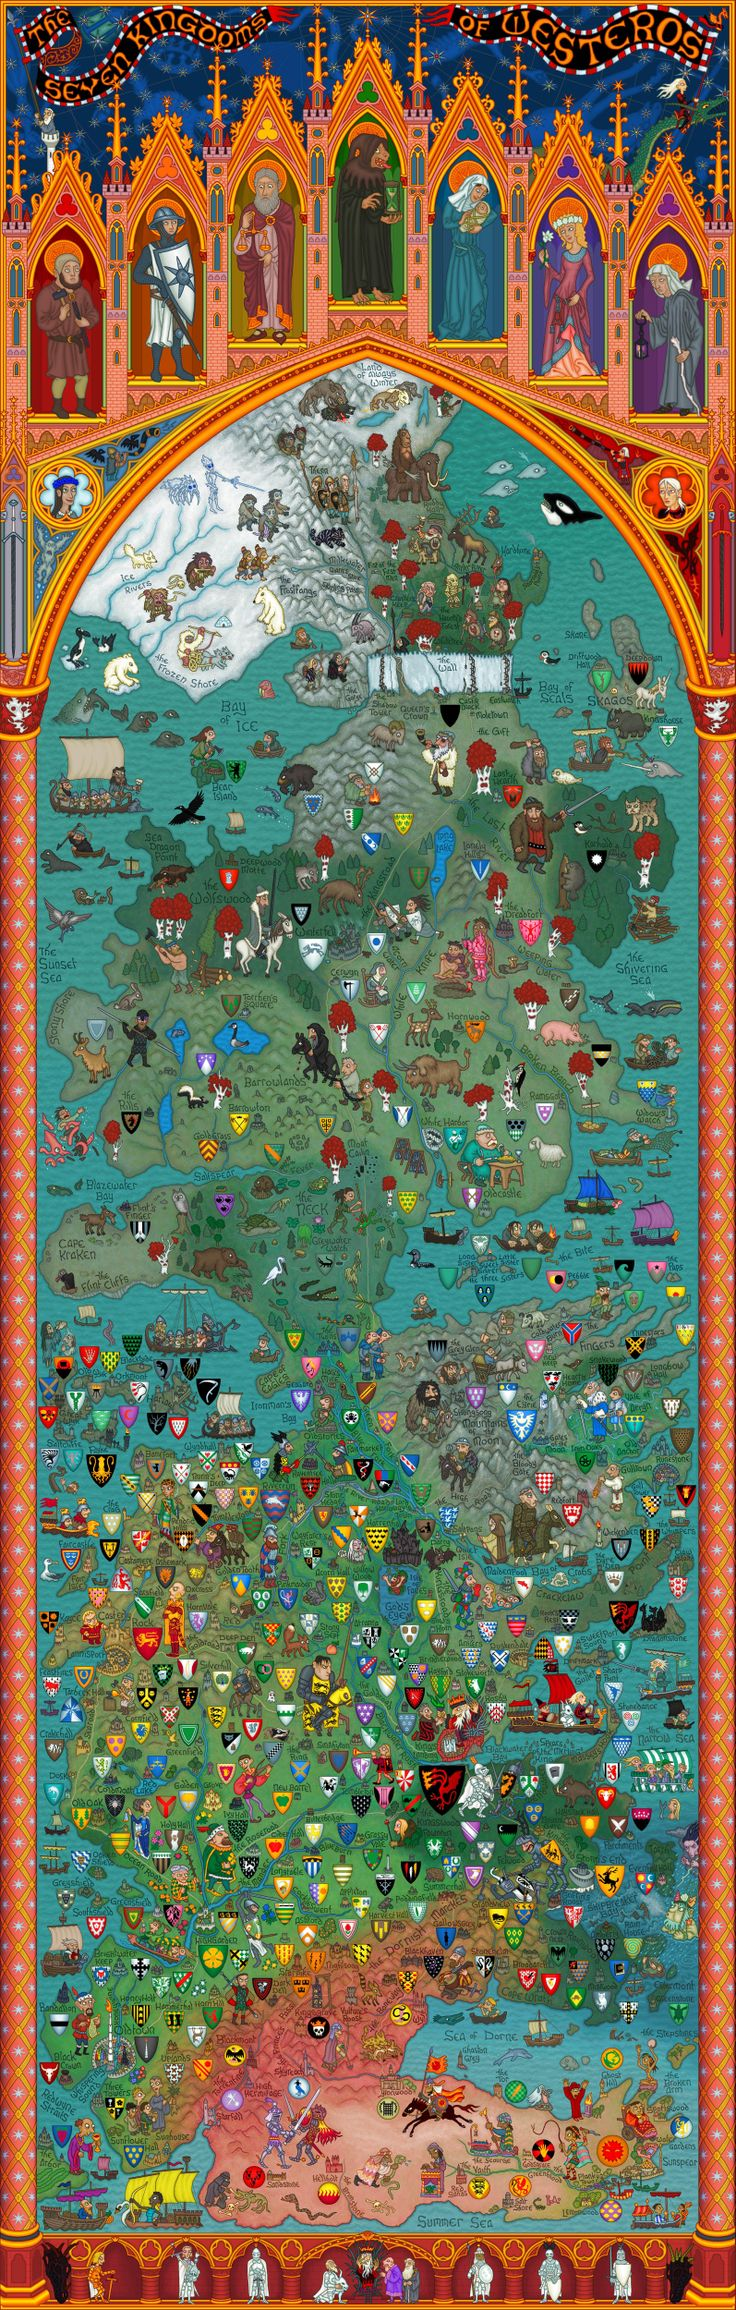 game of thrones' map